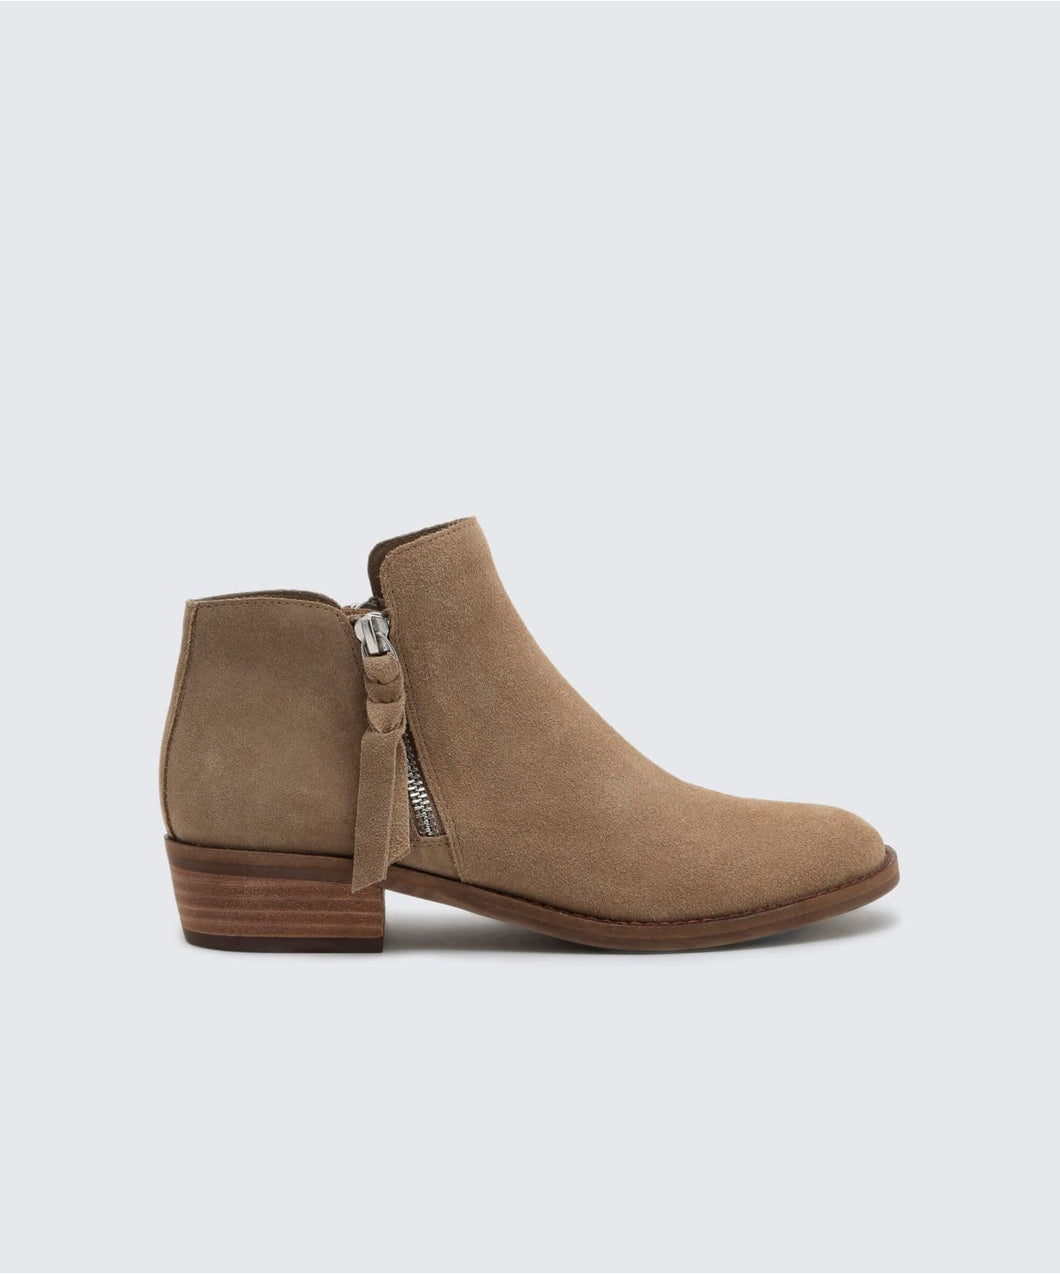 SYLVIA BOOTIES IN DK TAUPE -   Dolce Vita